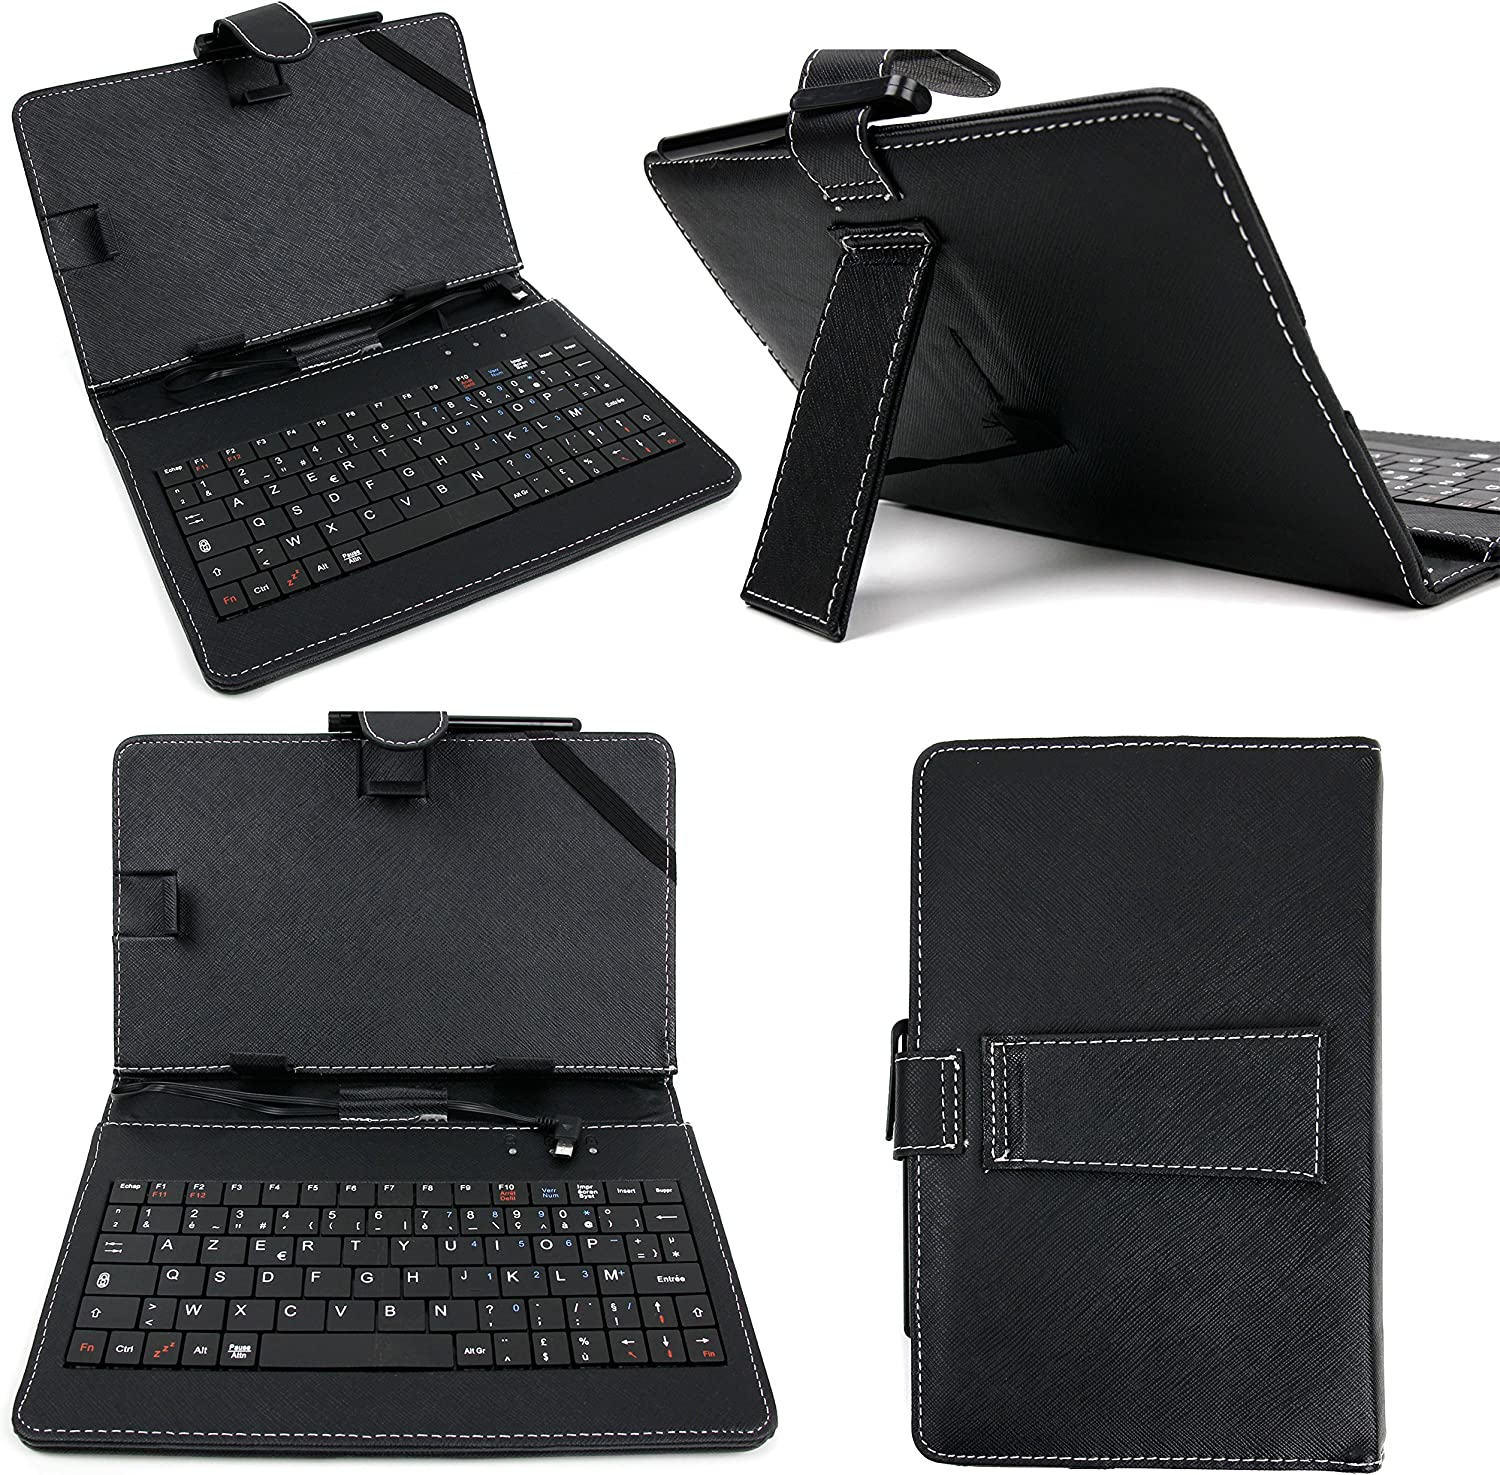 DURAGADGET Black PU Leather AZERTY French Keyboard Case w/Micro USB & Stand Function - Compatible with Acer Iconia Tab A1 | A1-811 | A1-8 | W3 | W3-810 | W4-820 & A100